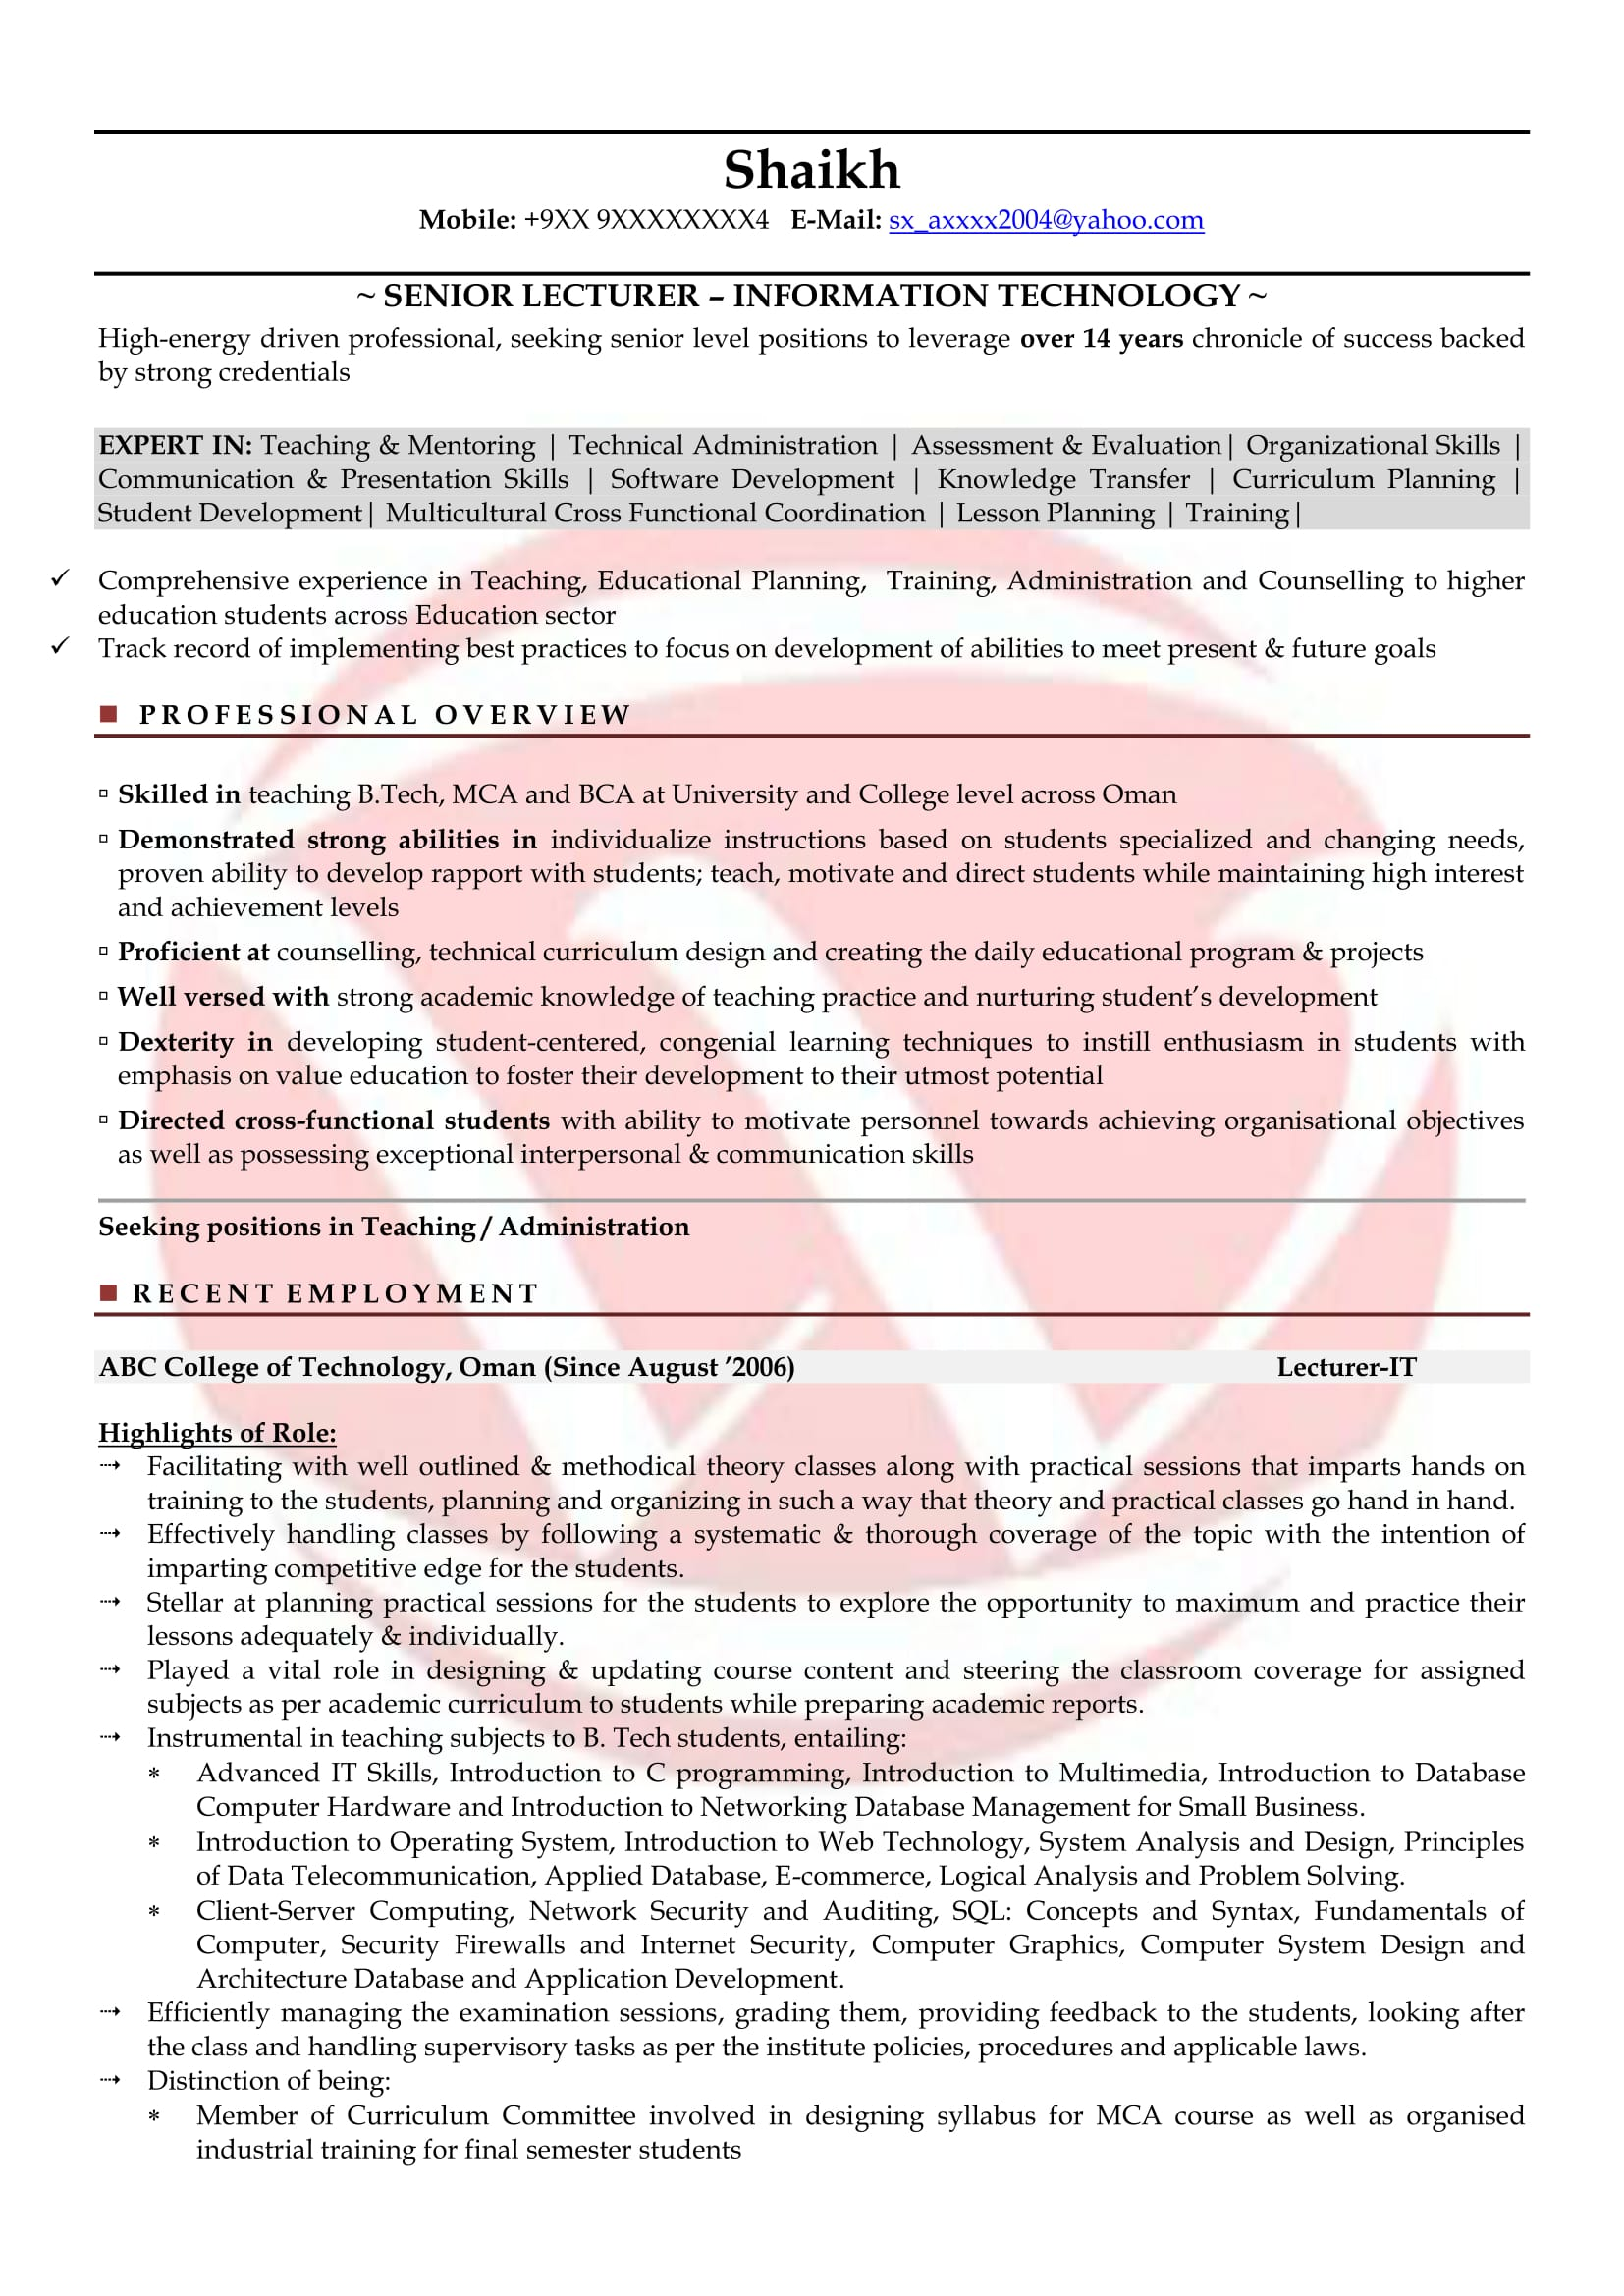 Lecturer Sample Resumes, Download Resume Format Templates!